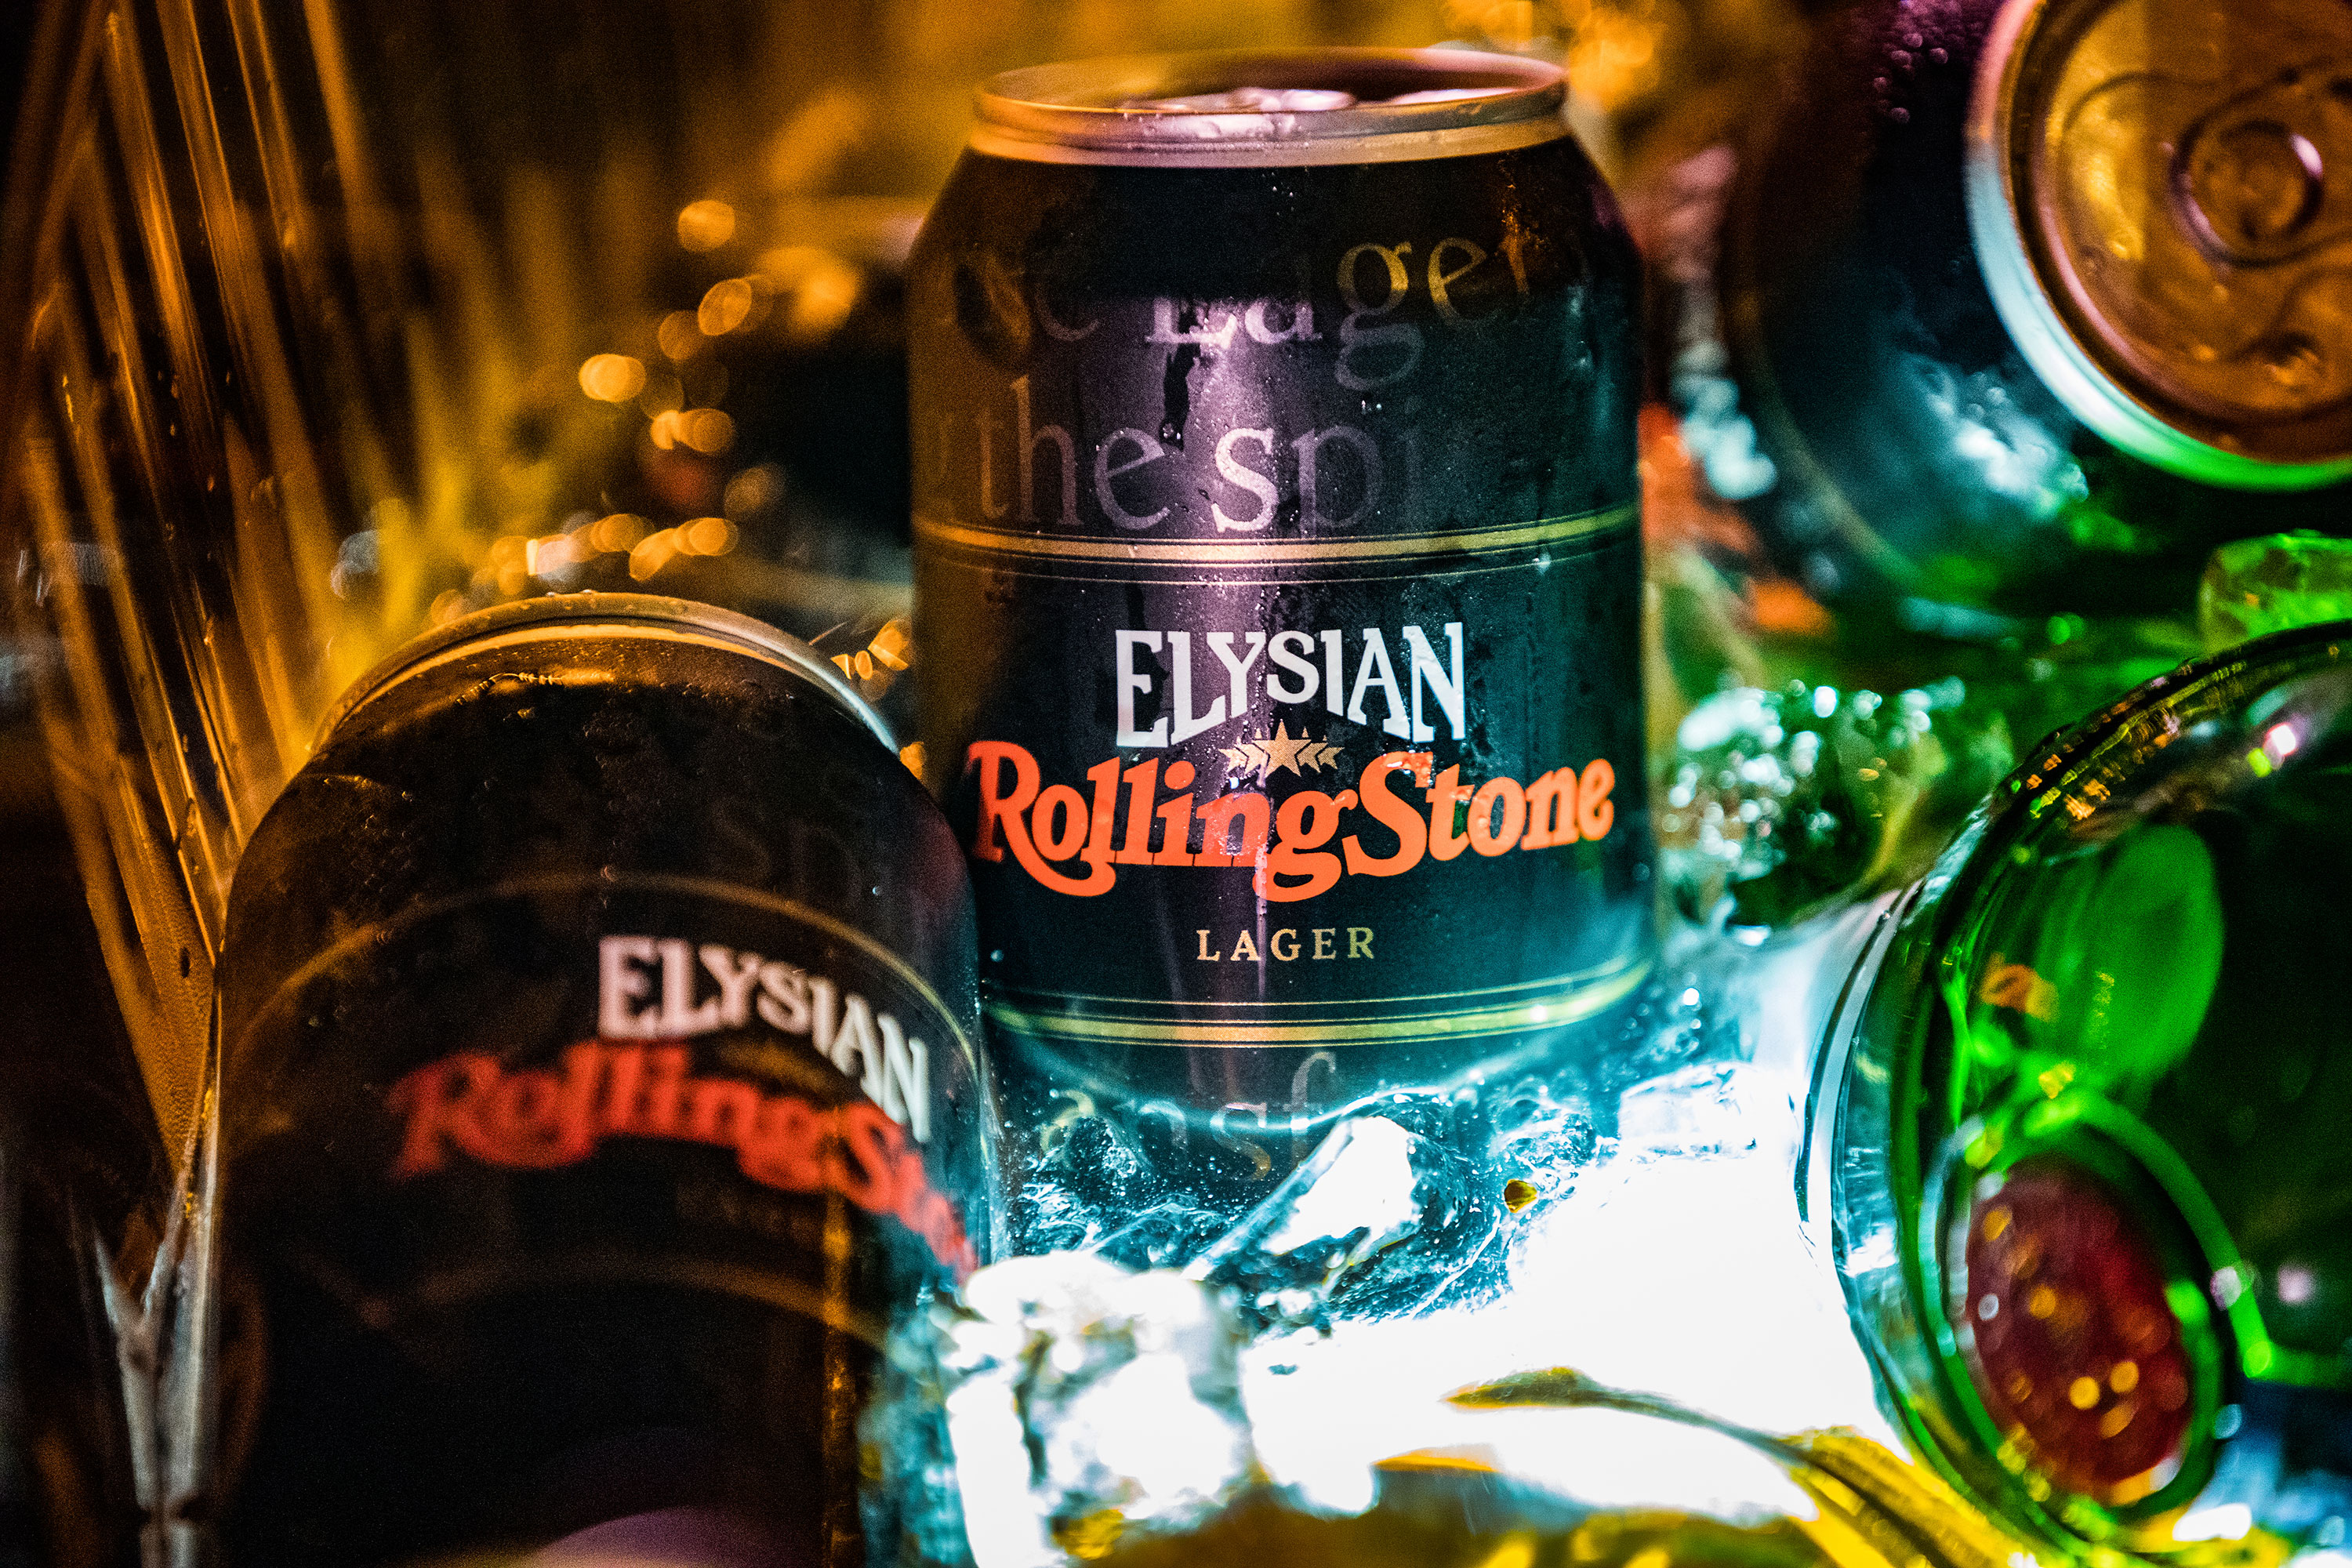 Rolling Stone's new jam is a co-branded craft beer